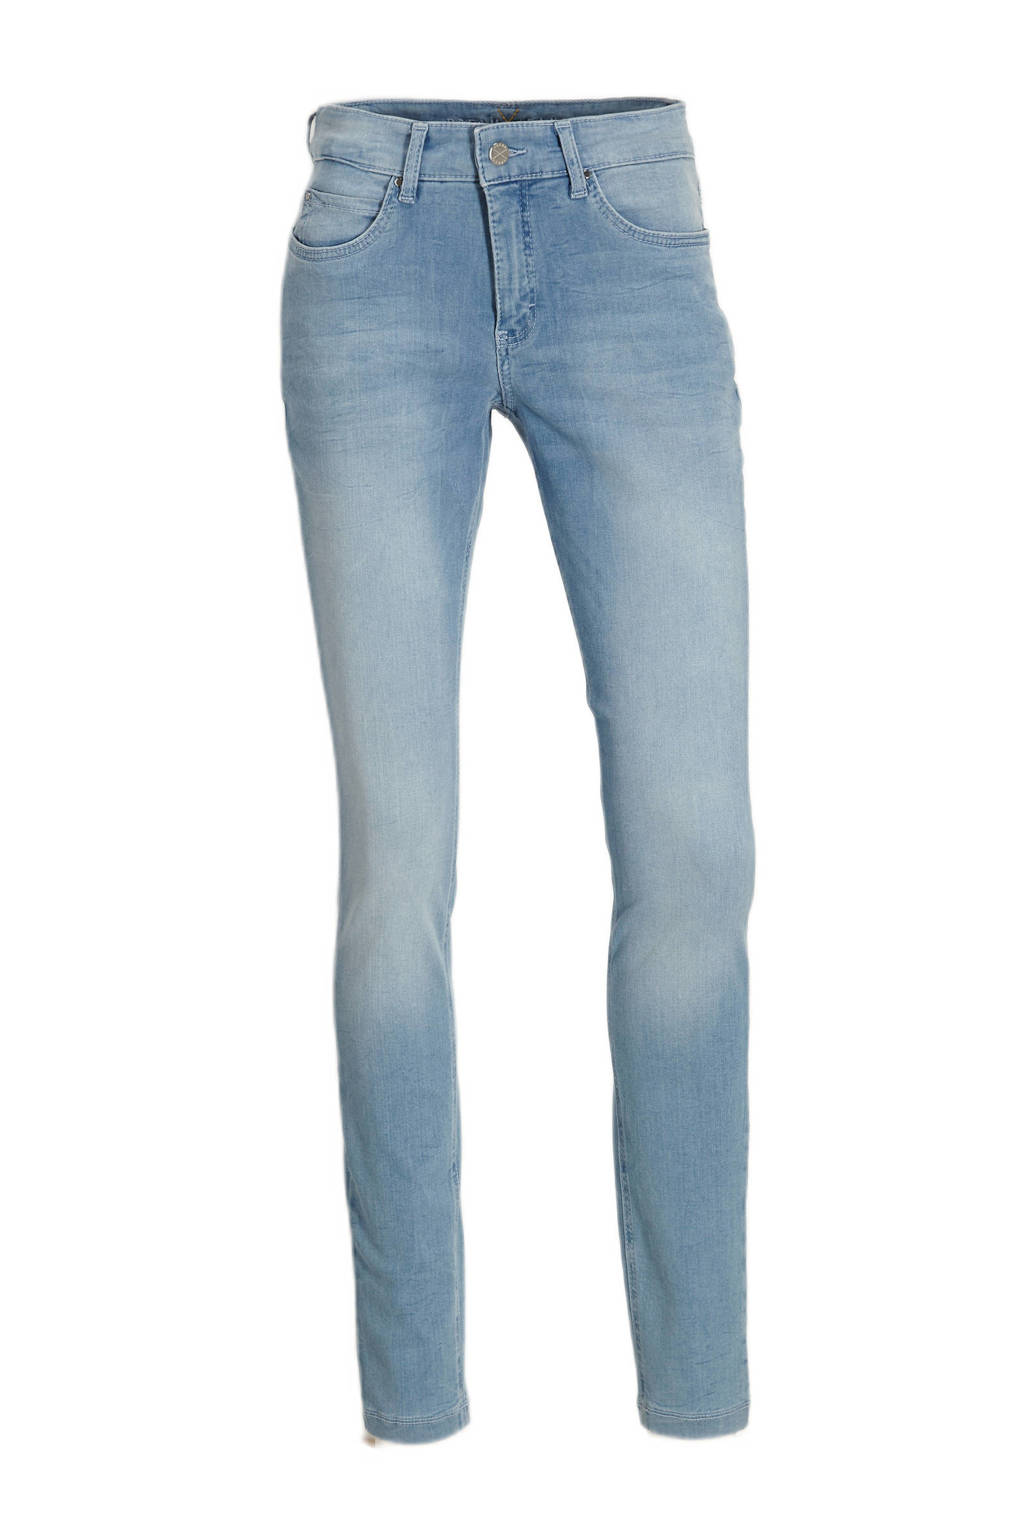 MAC dream skinny leg jeans Baby Blue Wash